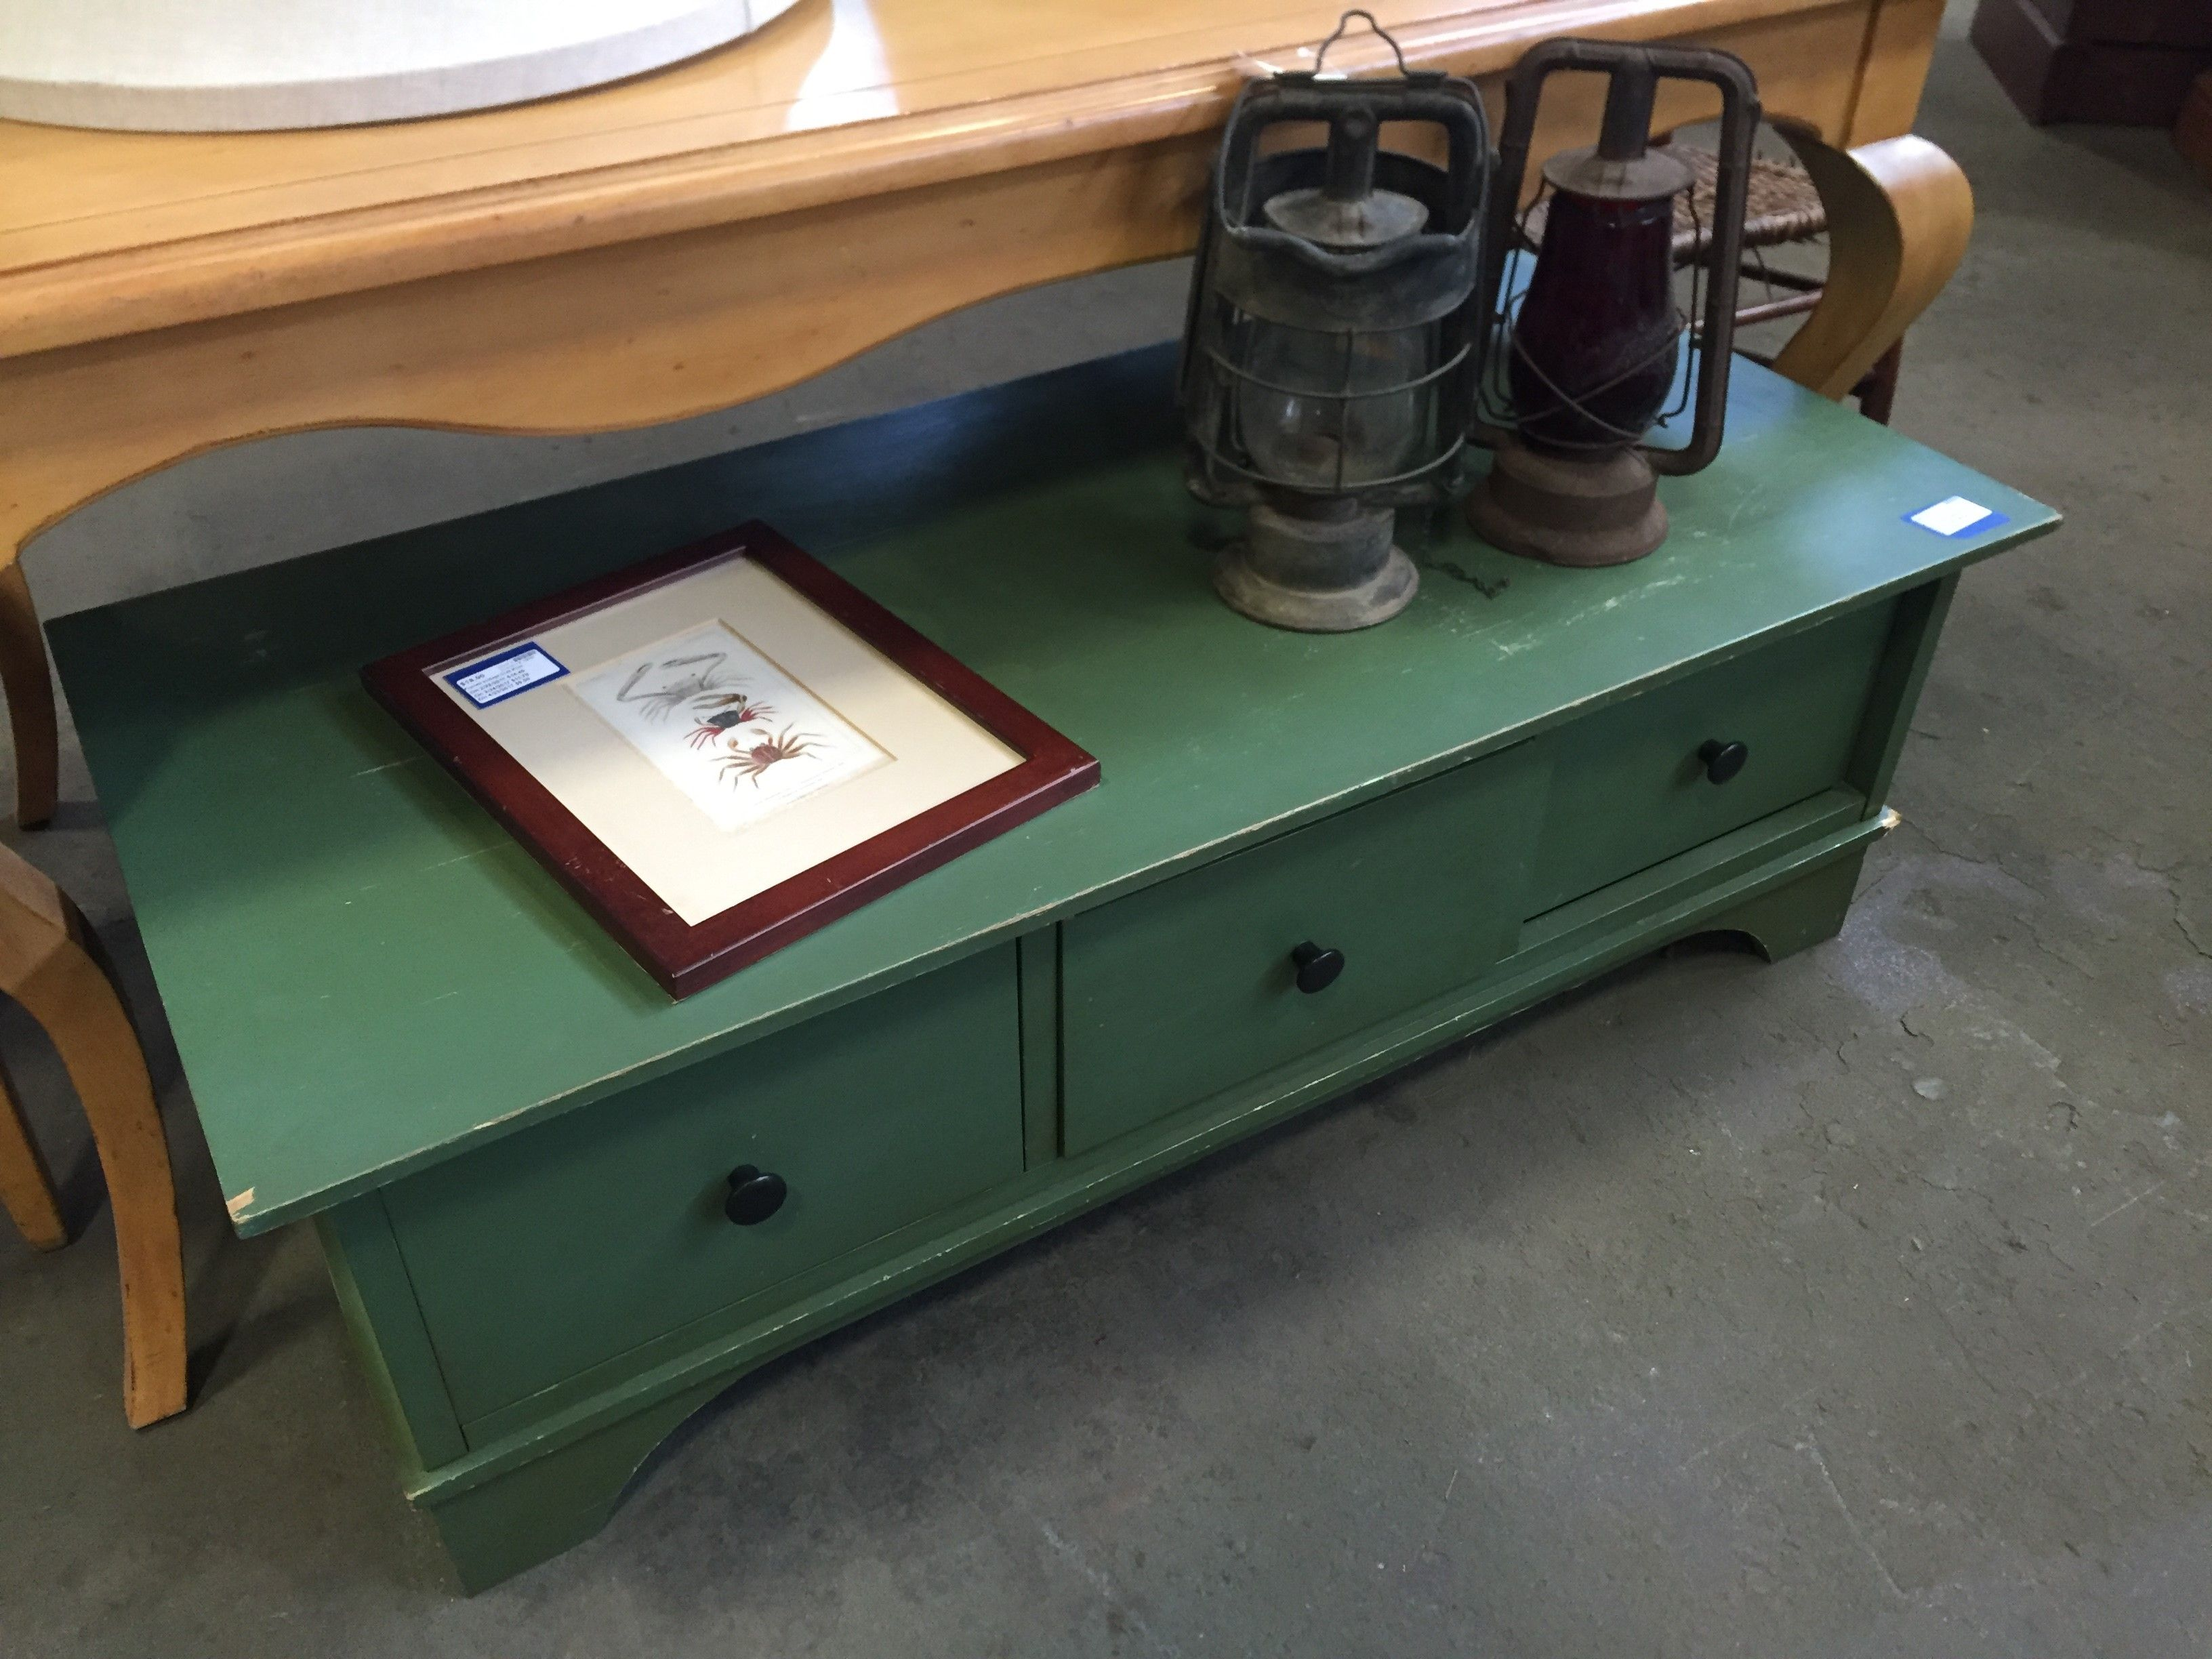 Green Coffee Tables Current Price 8200 First Markdown On 3 For The Home